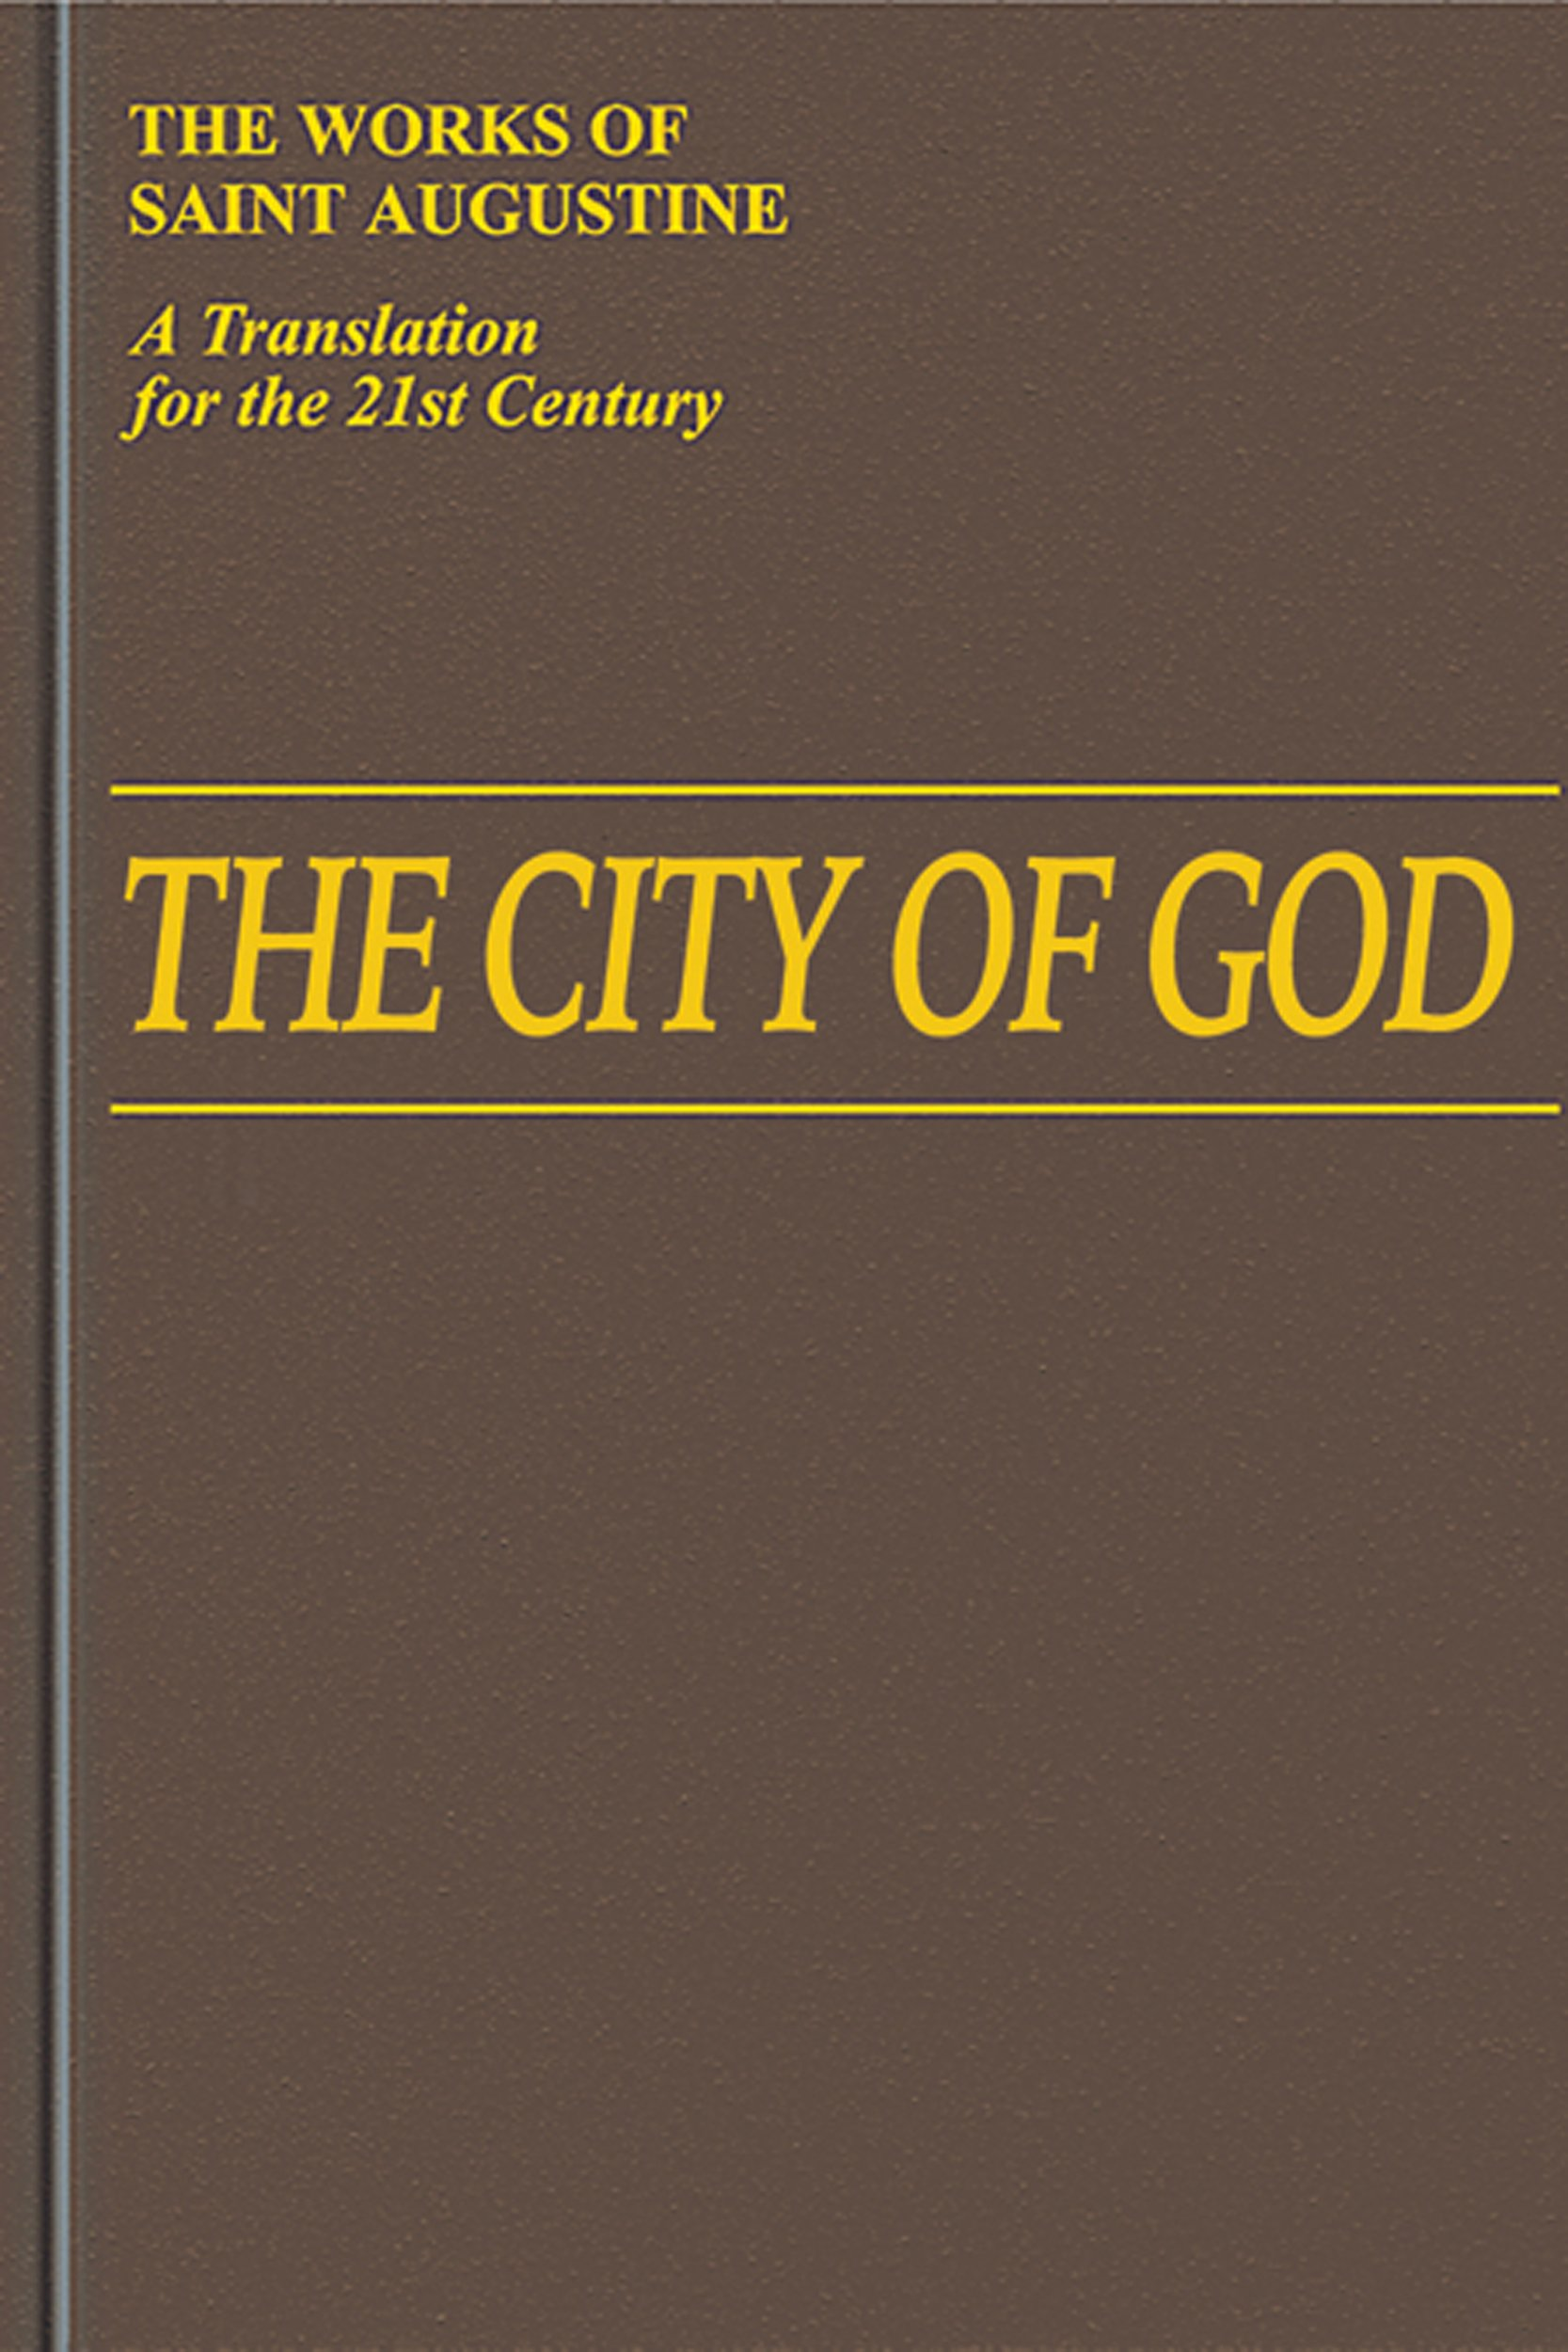 The City of God (1-10) (Vol. I/6) (The Works of Saint Augustine: A  Translation for the 21st Century): Saint Augustine, William Babcock  (Translator), Boniface Ramsey: 9781565484542: Amazon.com: Books